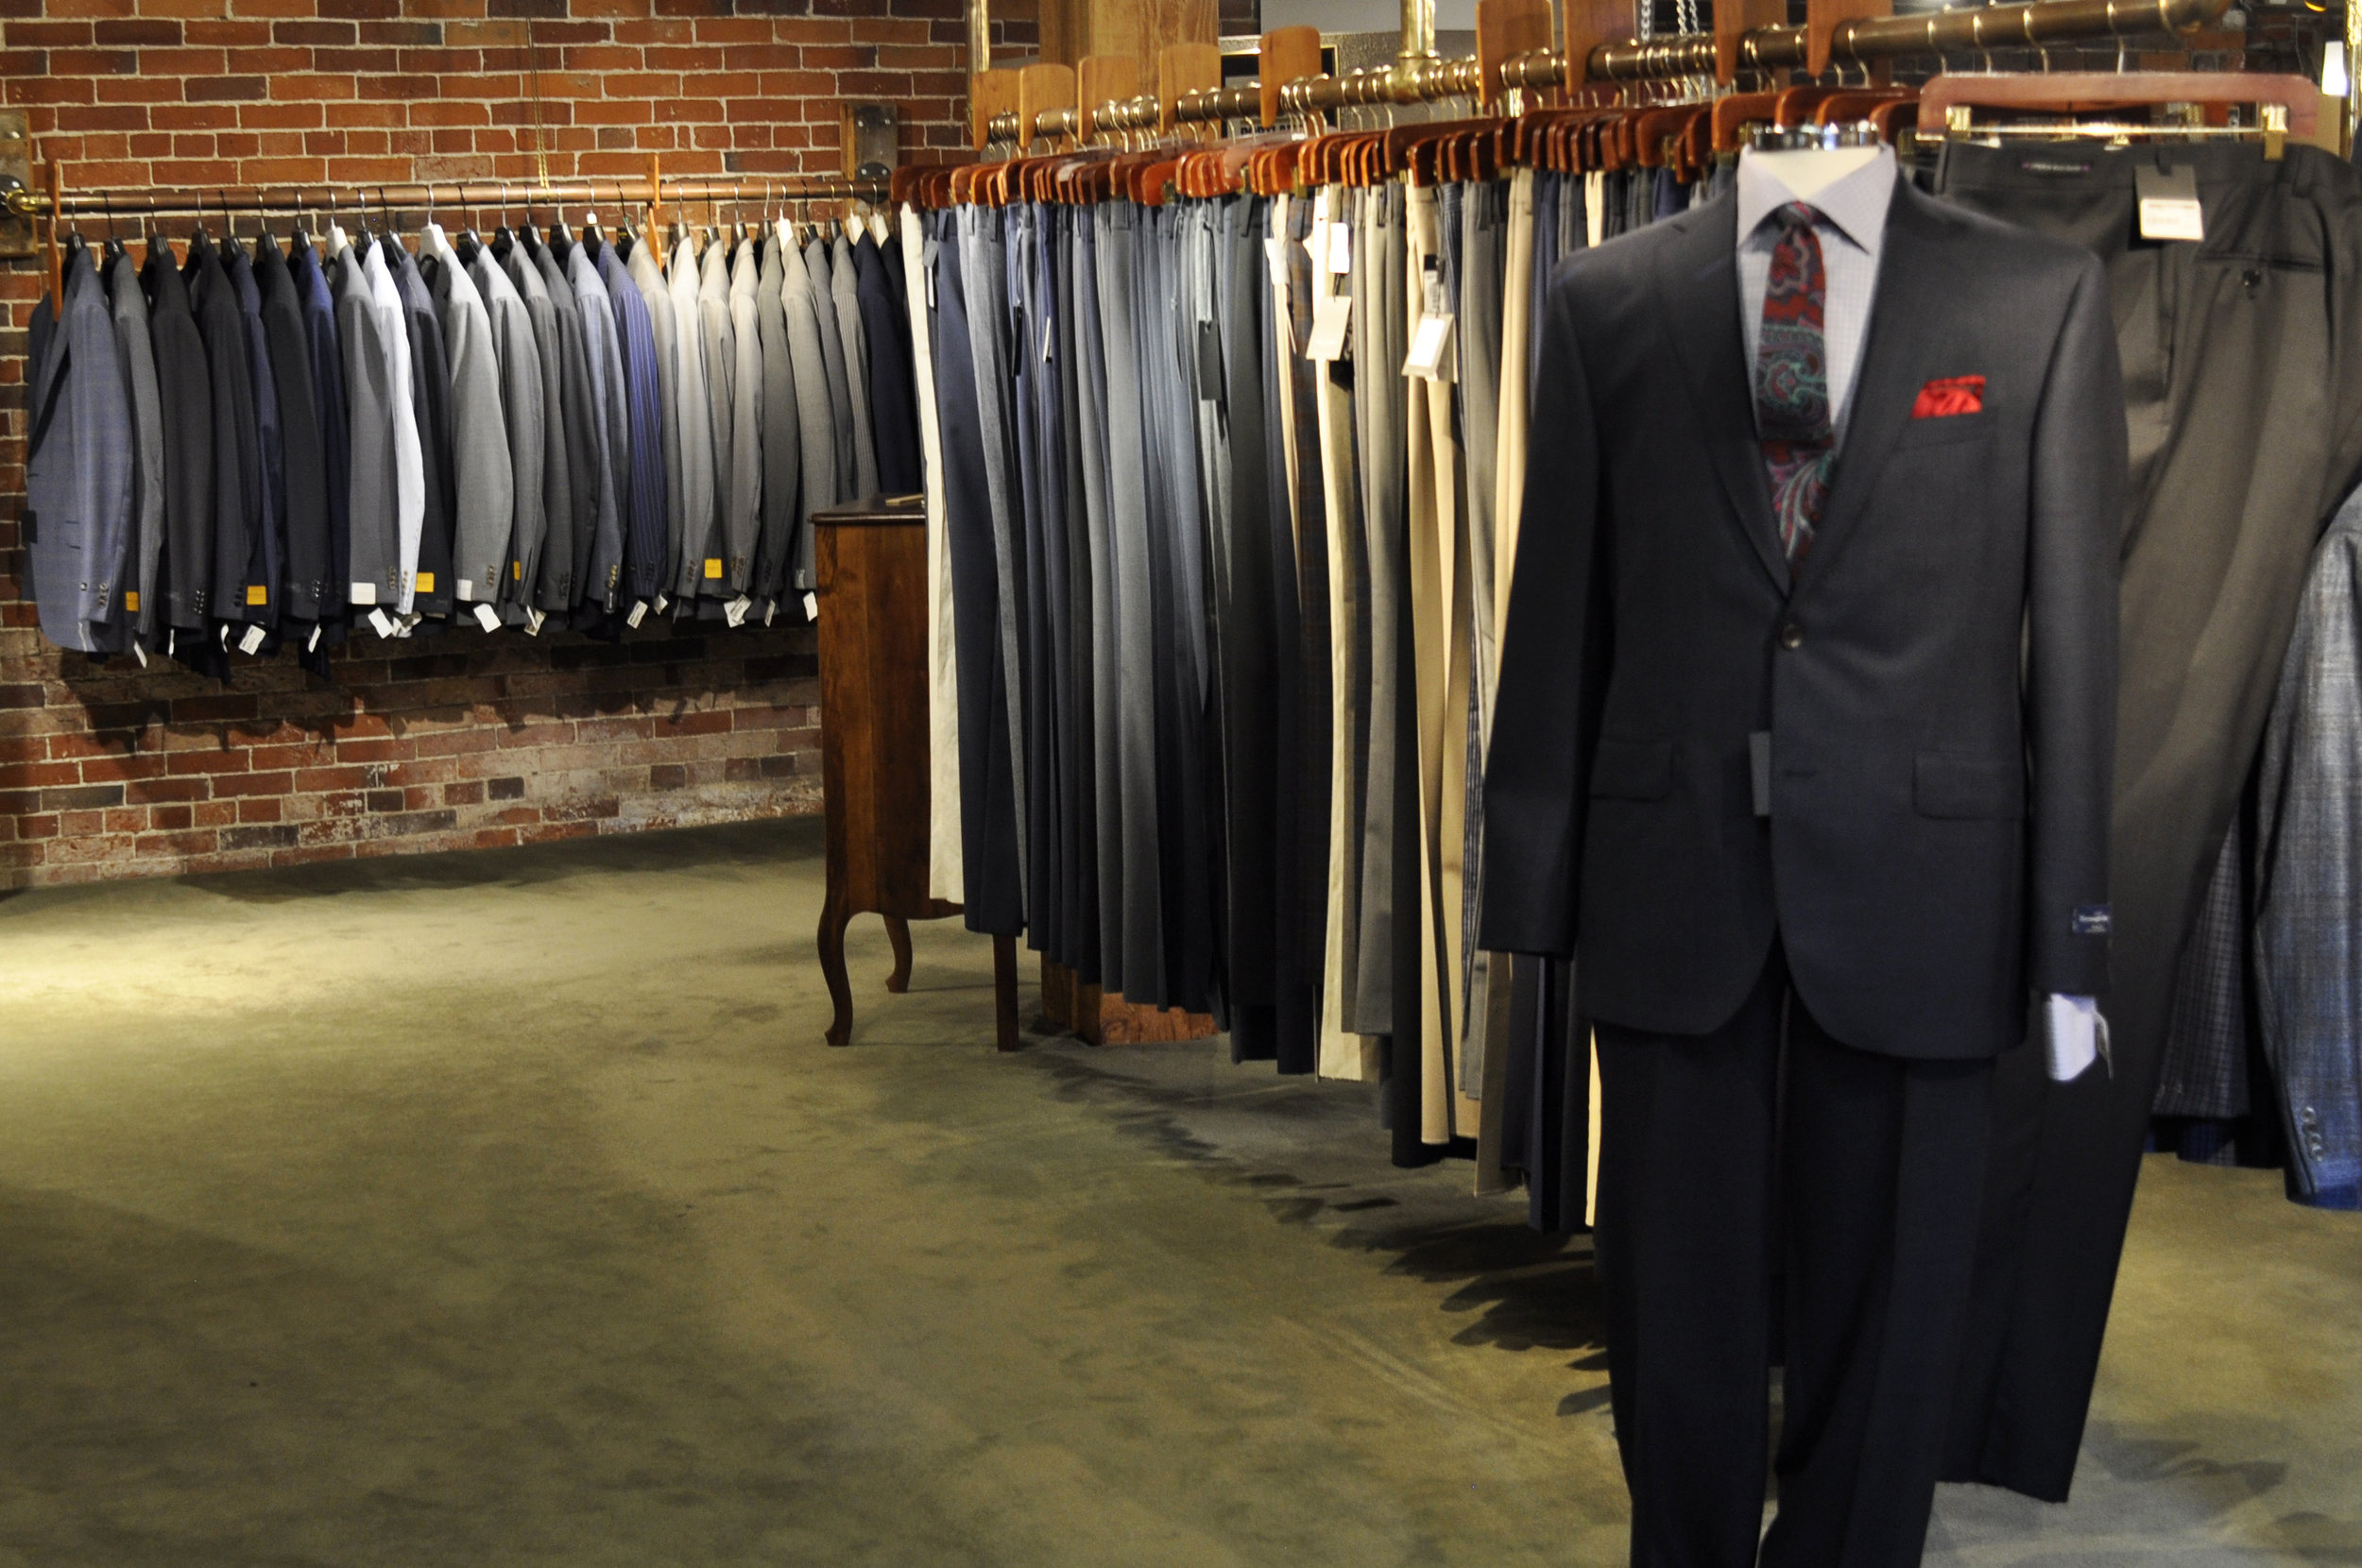 We know a lot of you associate Joseph's with tailoring, and with good reason! Between our selection of Ready-to-Wear suits,  Made-to-Measure  programs, and a master tailor on site, we can accommodate virtually any wardrobe or budget. And now we're offering some of those selections online. Once again, we're starting smart, with a selection of essential  navy blazers ,  wool trousers , and  neckties , that fit in any wardrobe. Expect to gradually see more suiting, luxury Italian brands, and everything ranging from crisp and businesslike, to soft and casual.